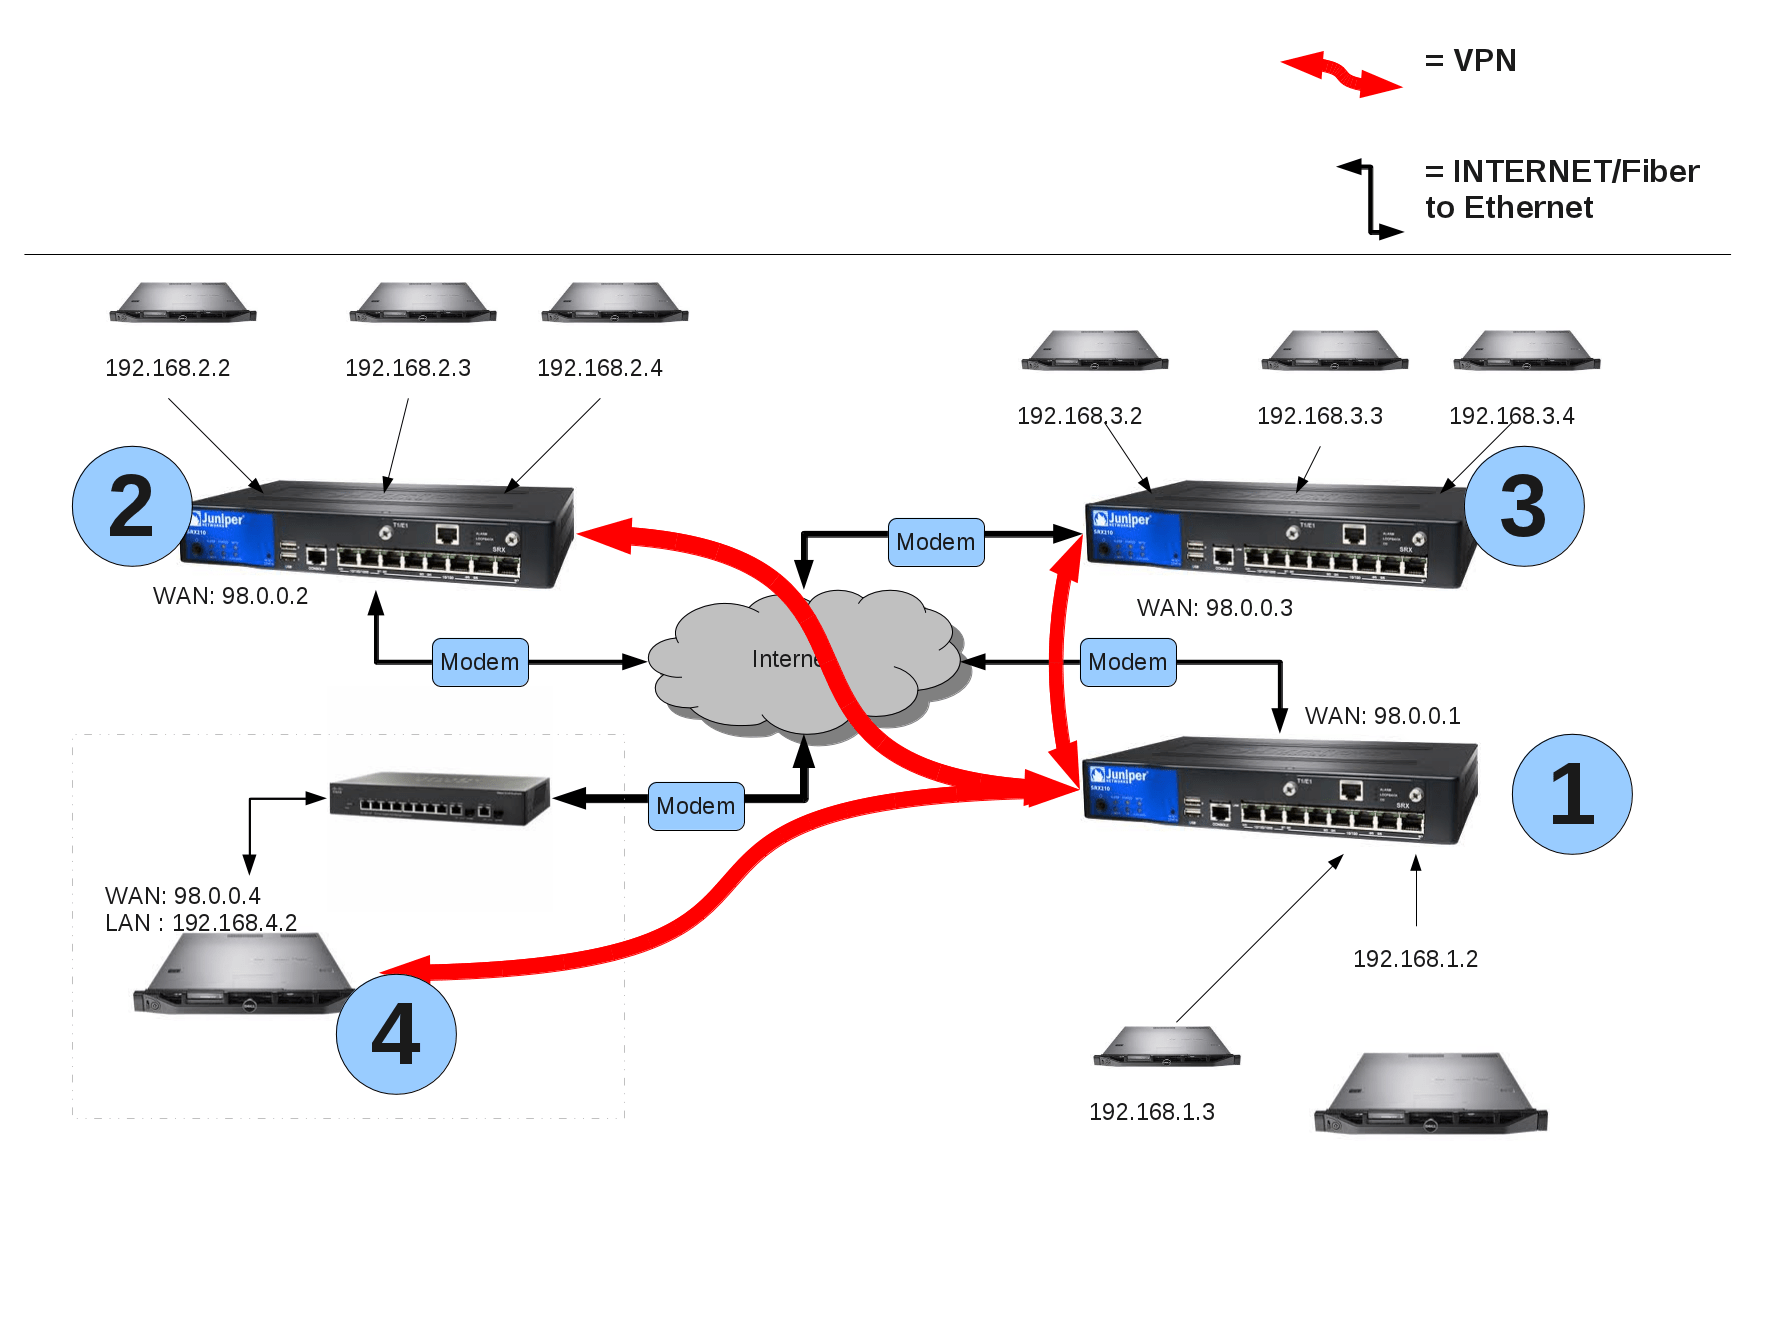 site to vpn diagram f2 molecular orbital how connect from linux ipsec through a